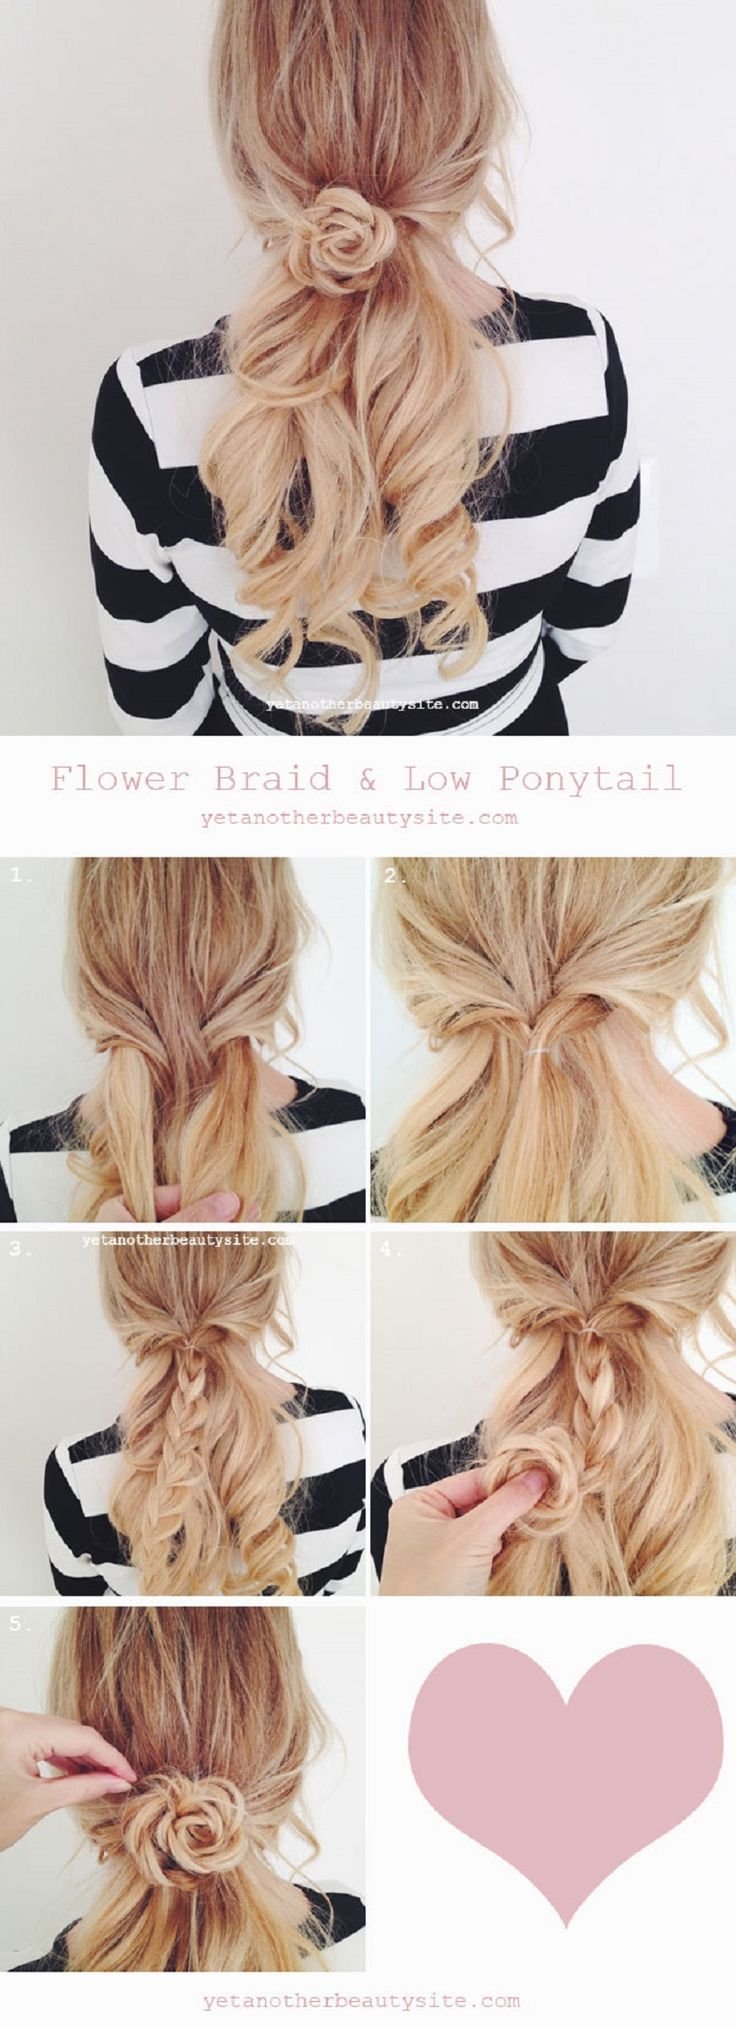 Pretty Low Ponytail & Flower Braid - 16 Heatless DIY Hairstyles To Get You Through The Summer | GleamItUp